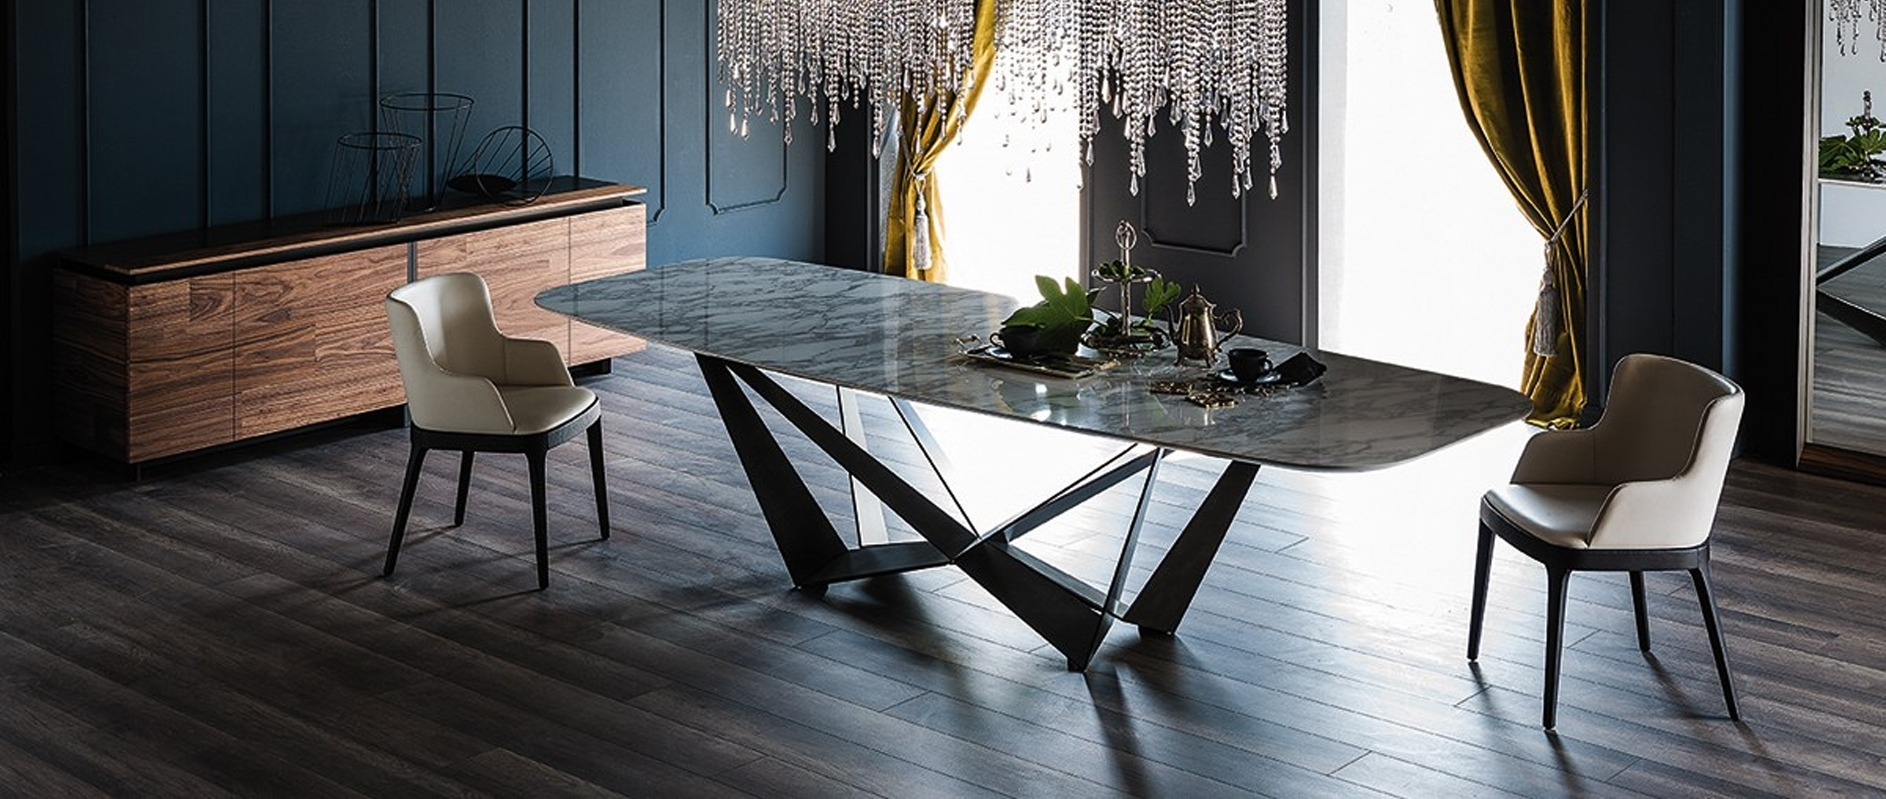 Modern Dining Room Furniture – Modern Dining Tables, Dining Chairs In Best And Newest Contemporary Dining Room Tables And Chairs (View 21 of 25)